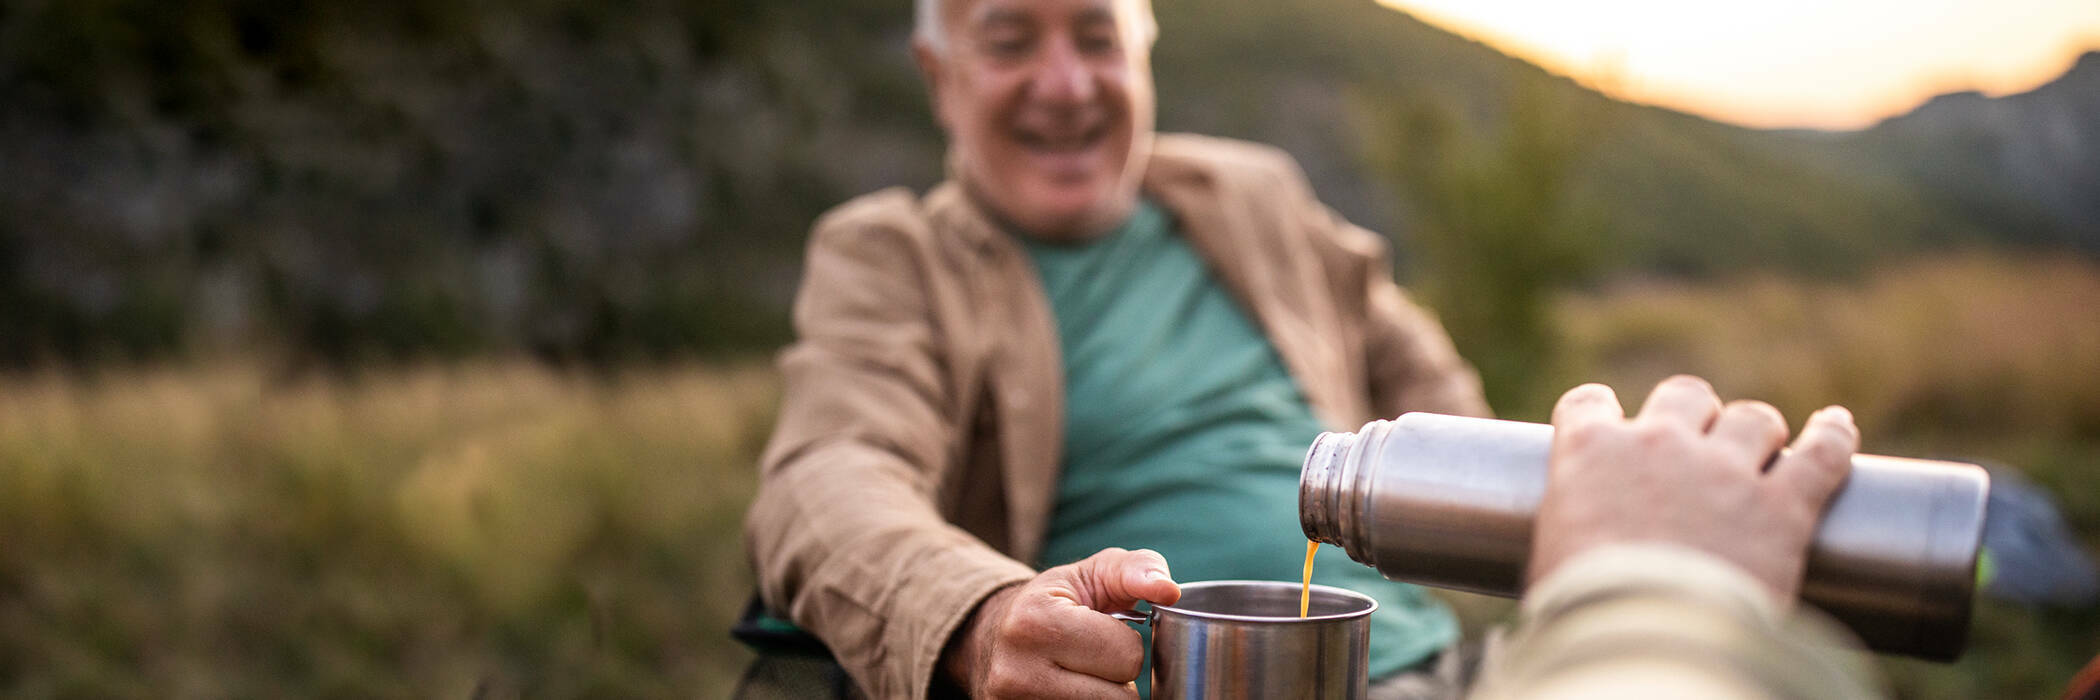 Man pouring coffee from thermos flask to his father while they're camping.